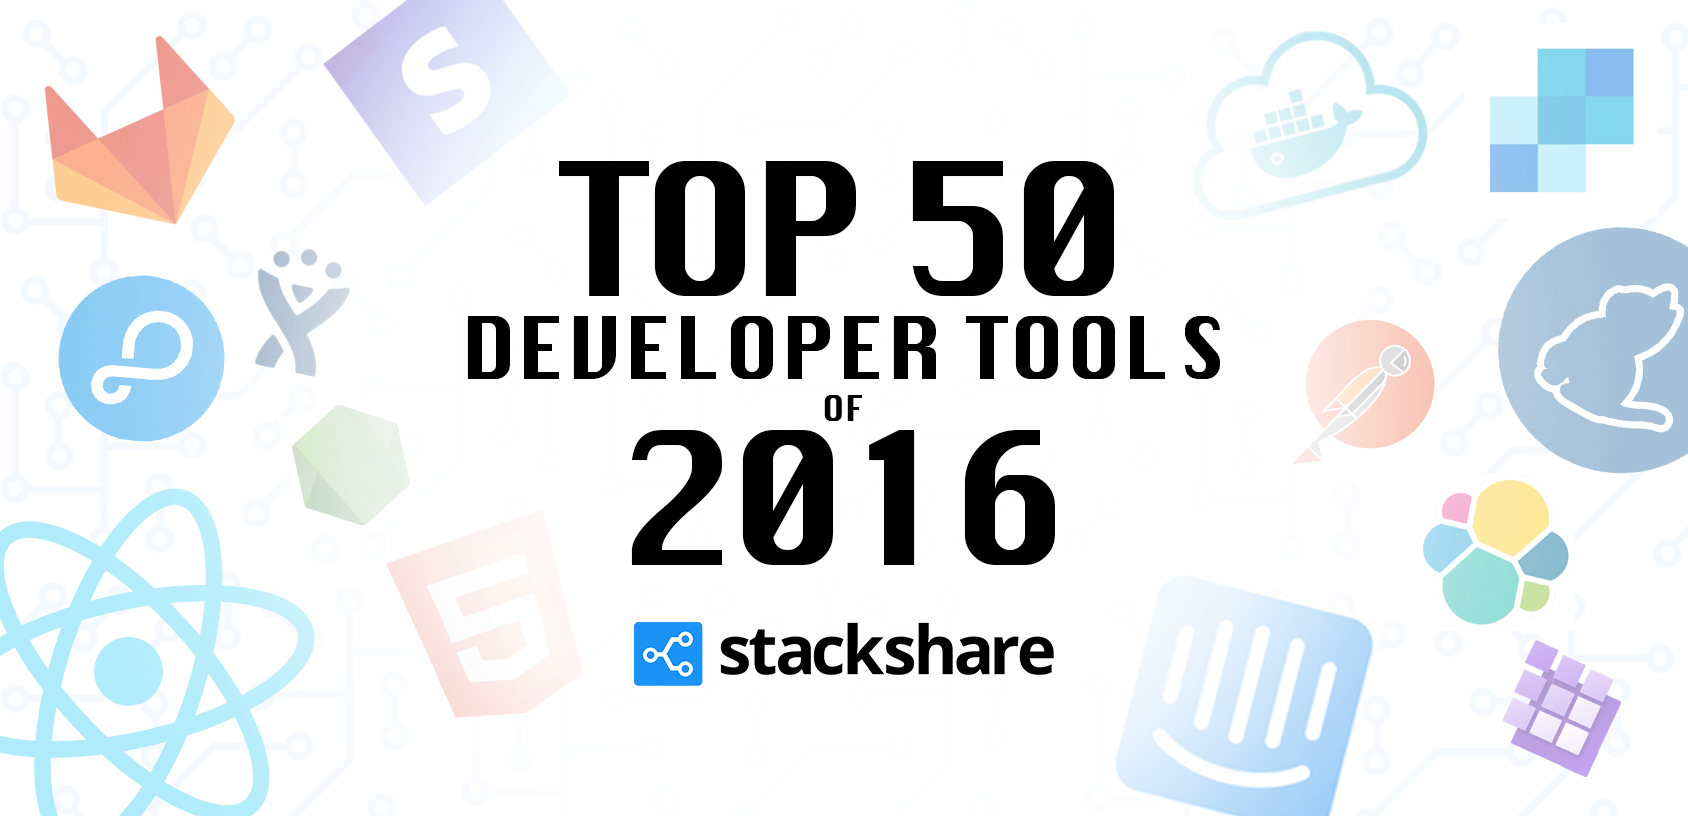 The Top 50 Developer Tools of 2016